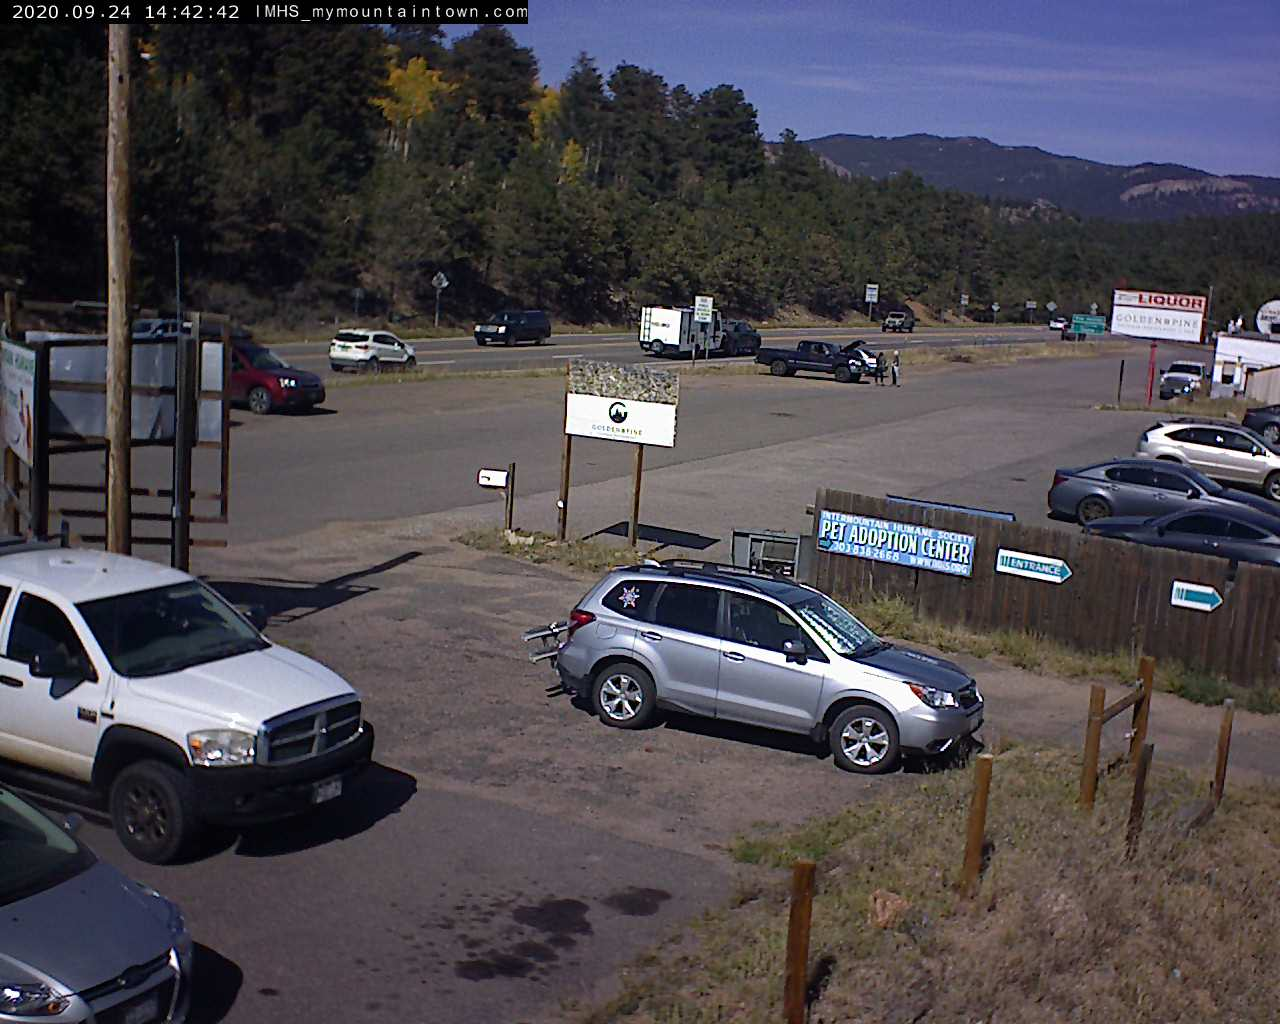 IMHS traffic webcam